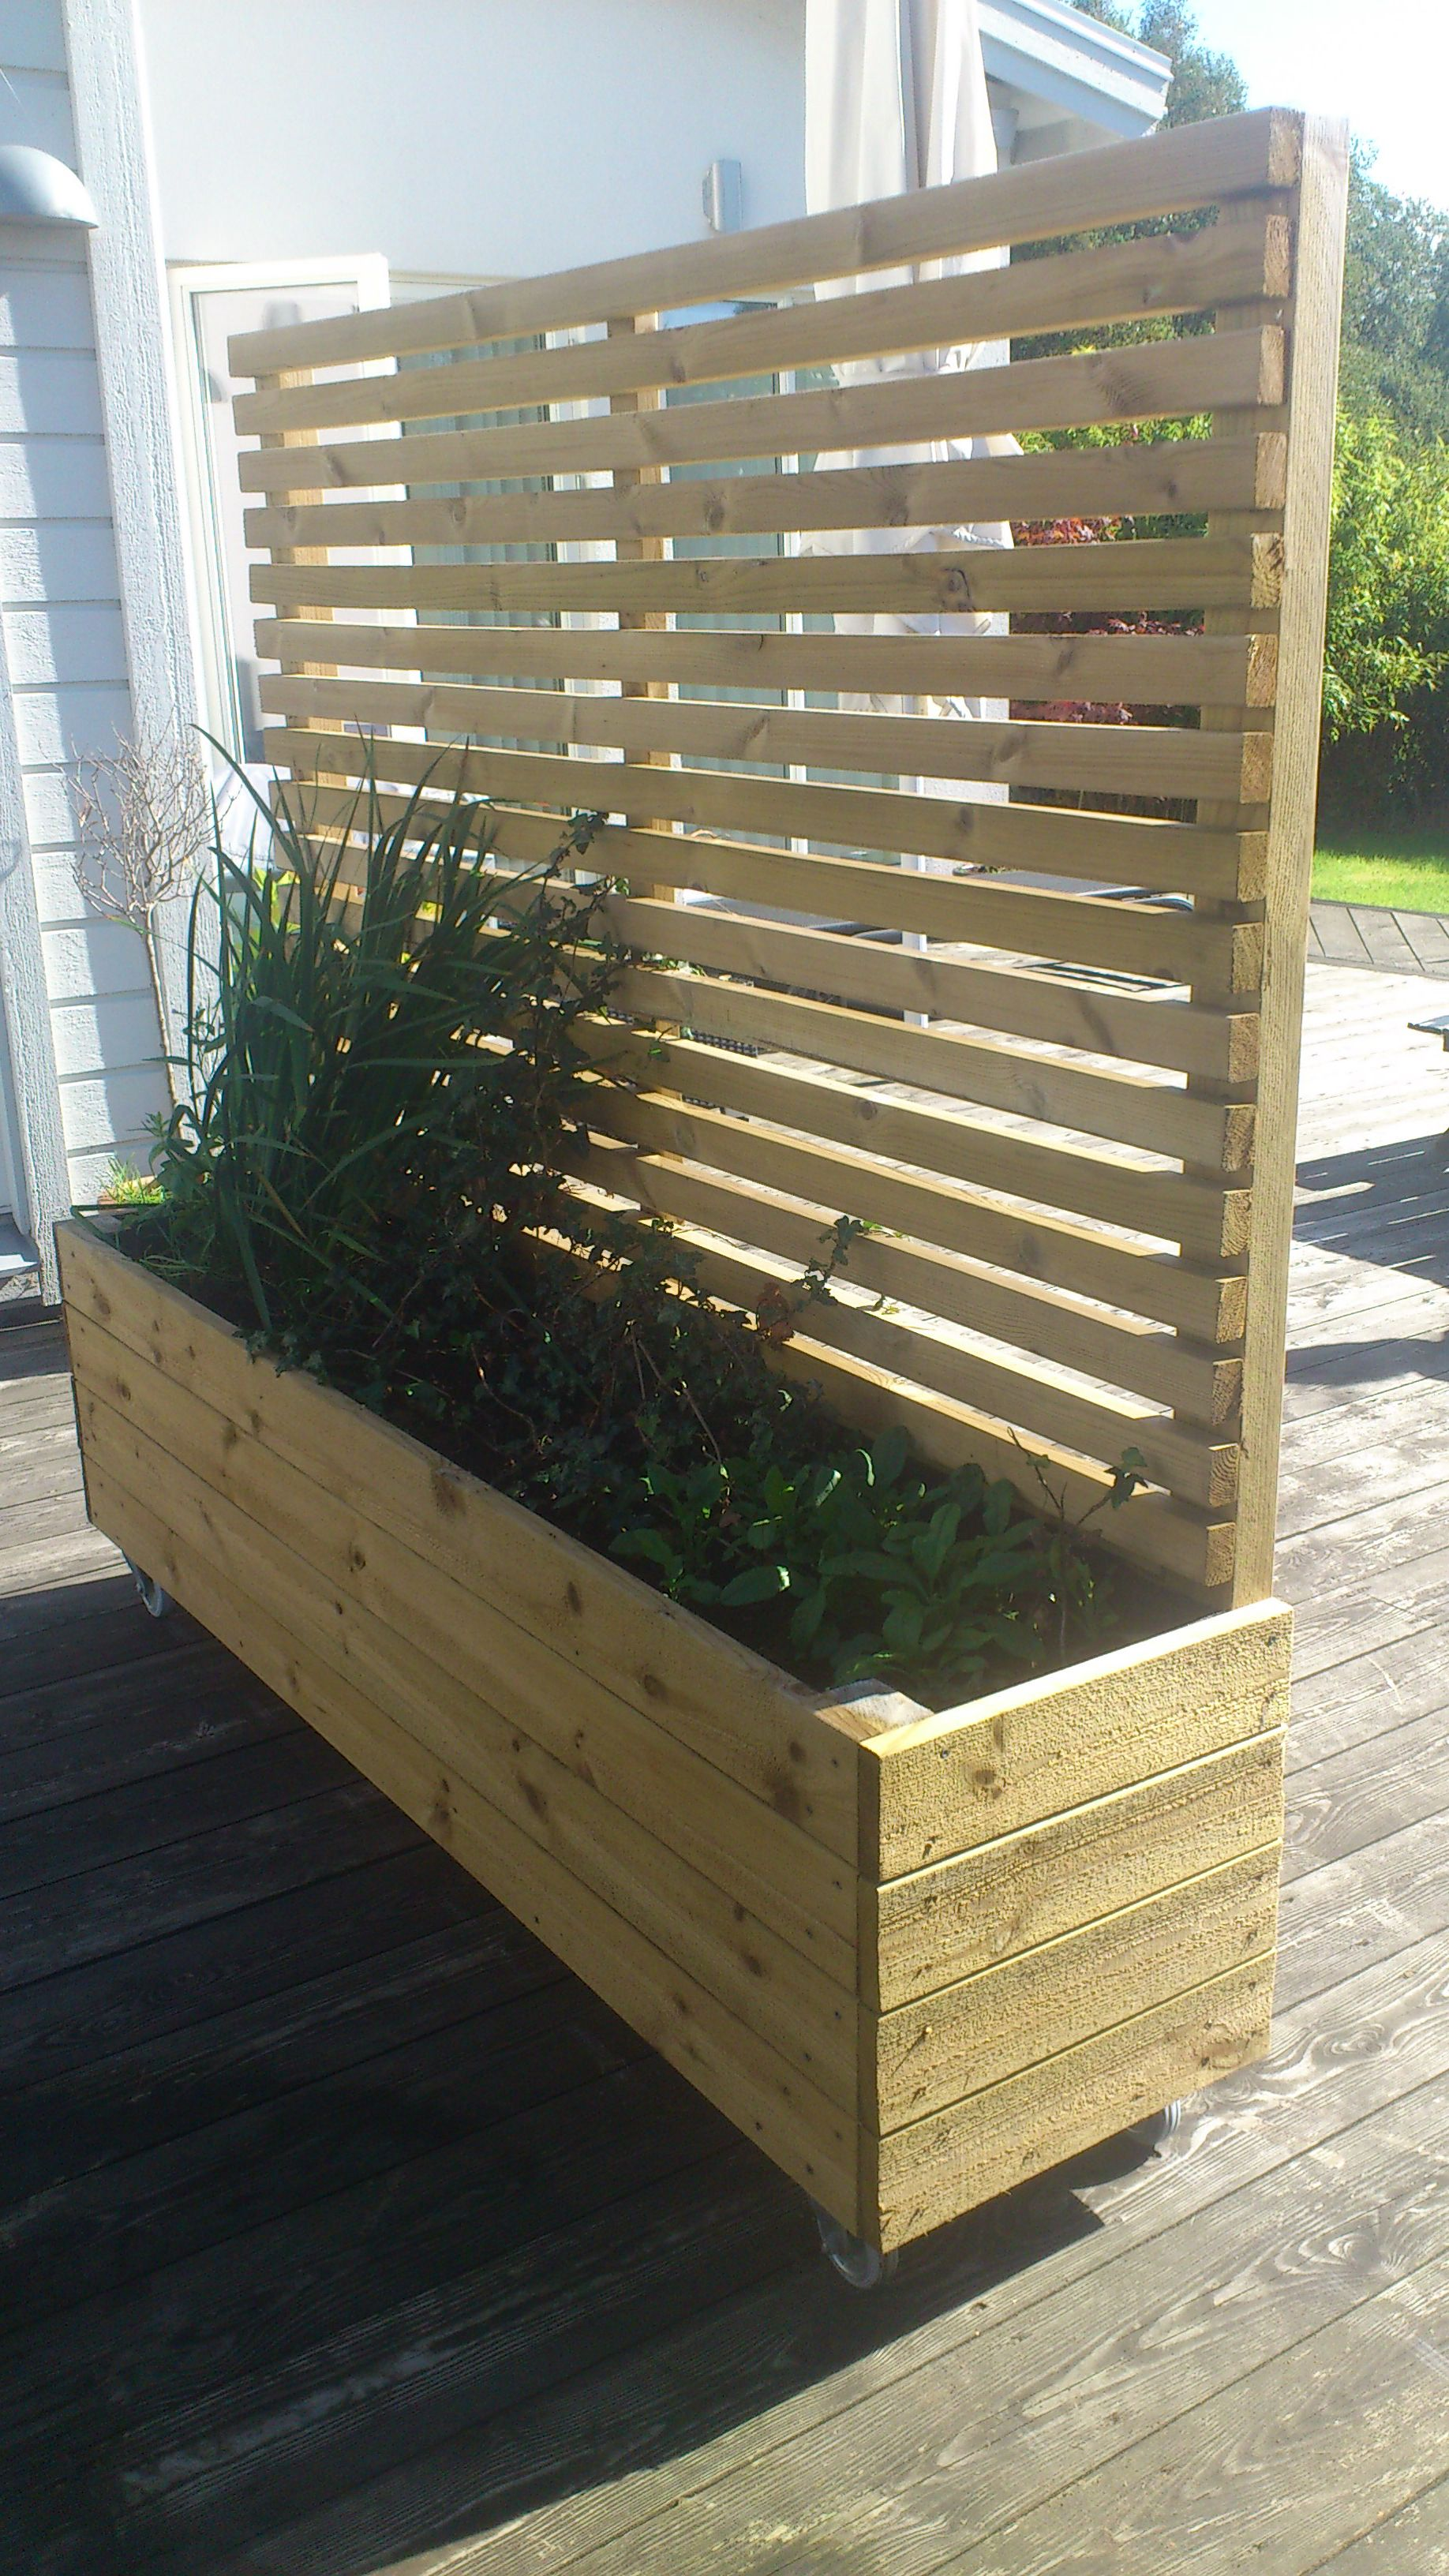 Spalje bloml da vindskydd p hjul diy mina hemmaprojekt for Hanging privacy screens for decks